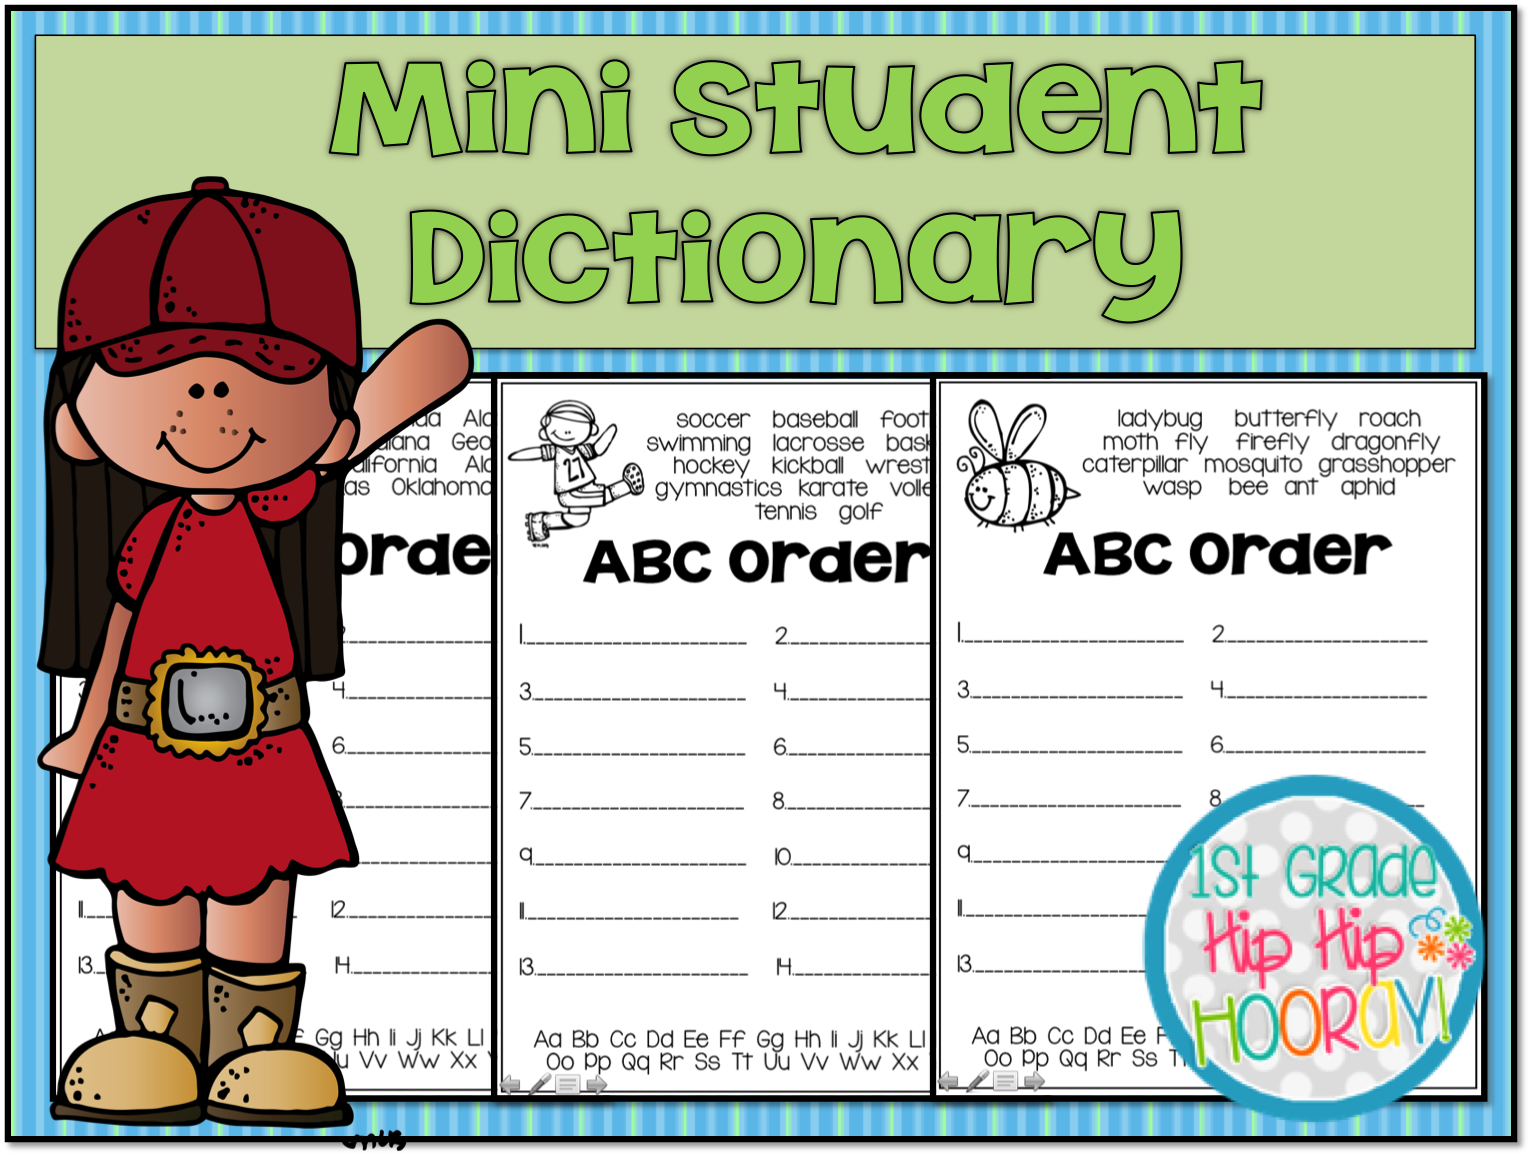 1st Grade Hip Hip Hooray!: Student Dictionary   A to Z